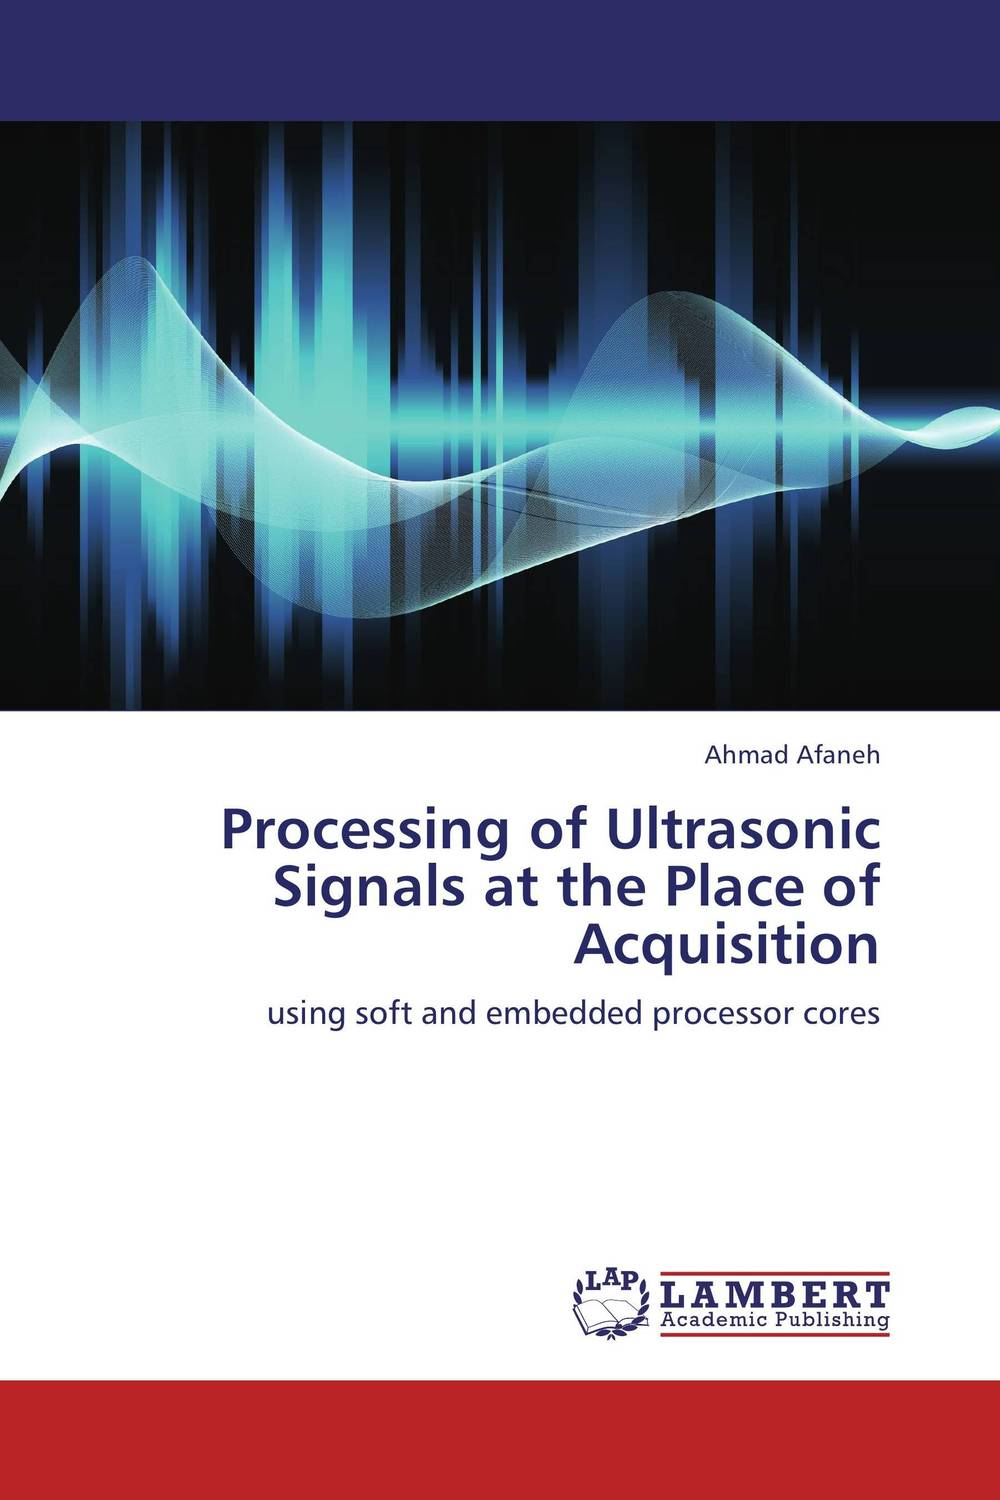 Processing of Ultrasonic Signals at the Place of Acquisition